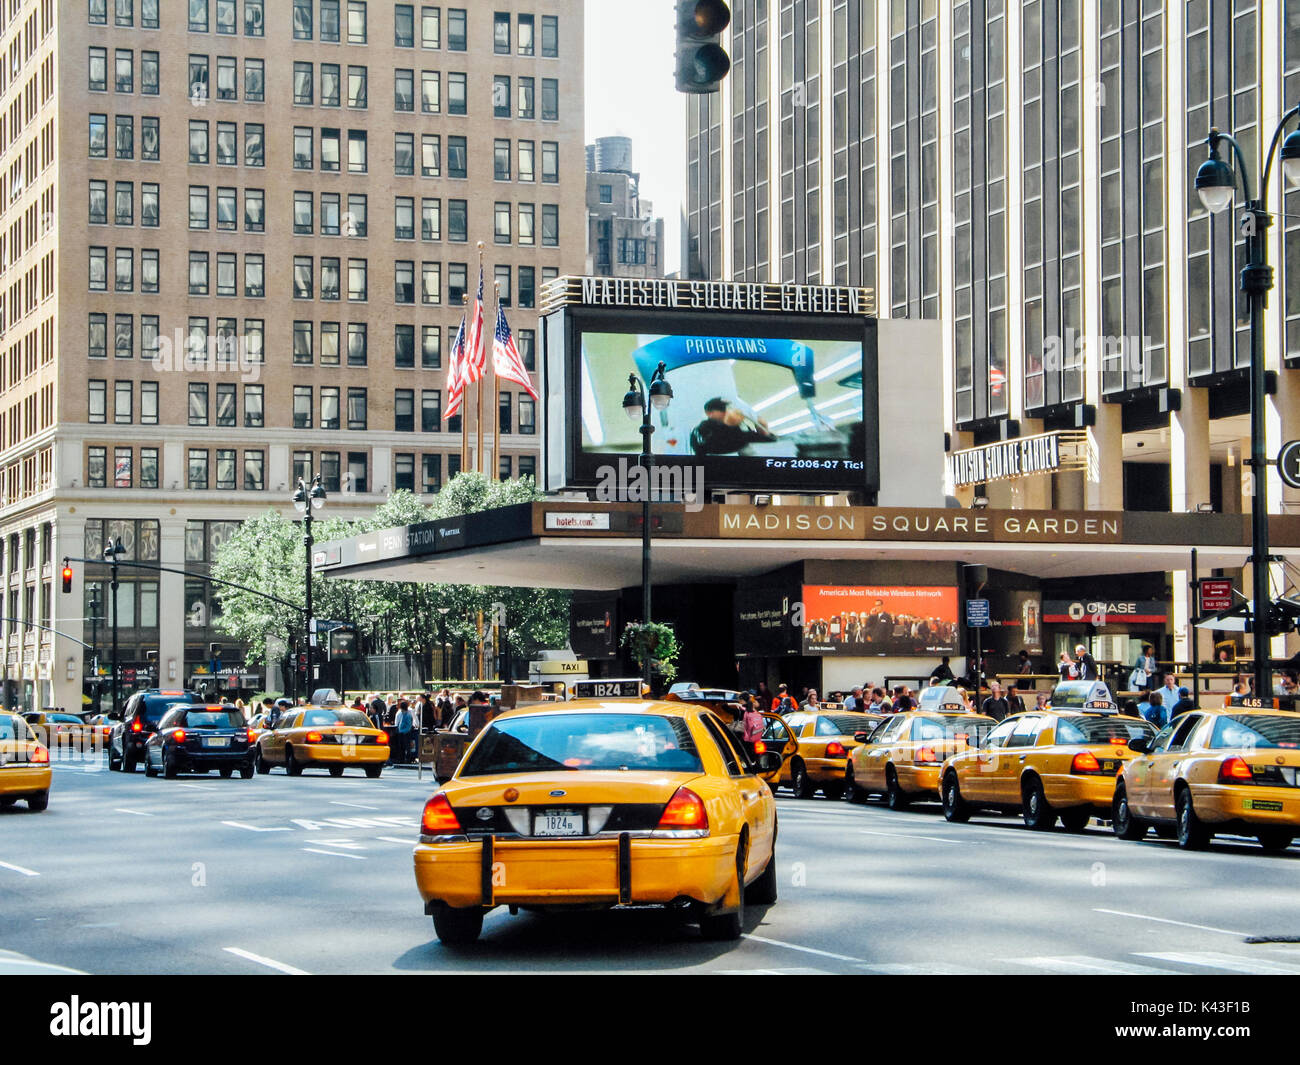 Taxis New York Queue Stock Photos Taxis New York Queue Stock Images Alamy